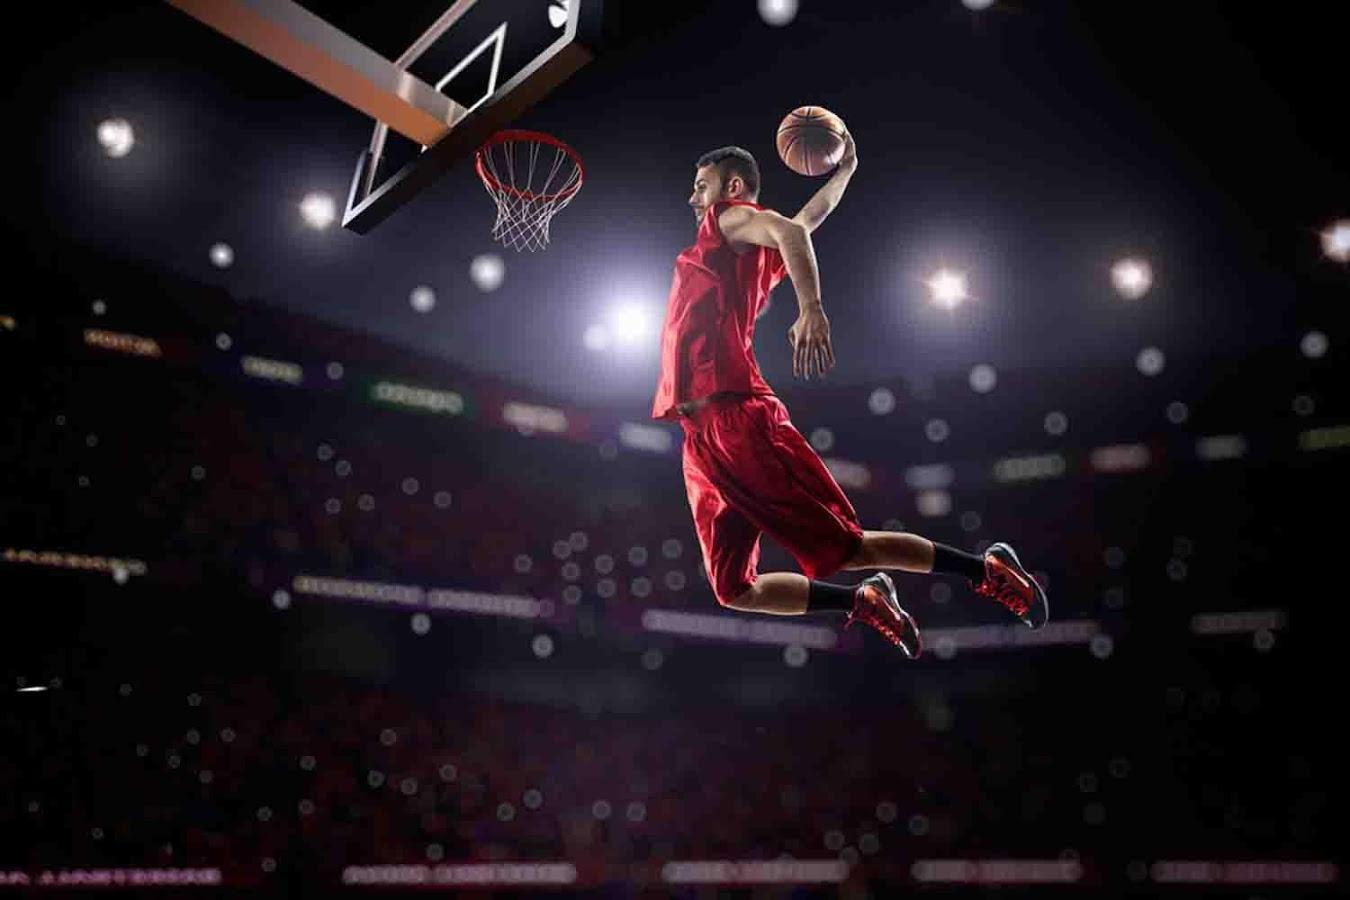 Basketball Love Hd Wallpapers For Android Apk Download